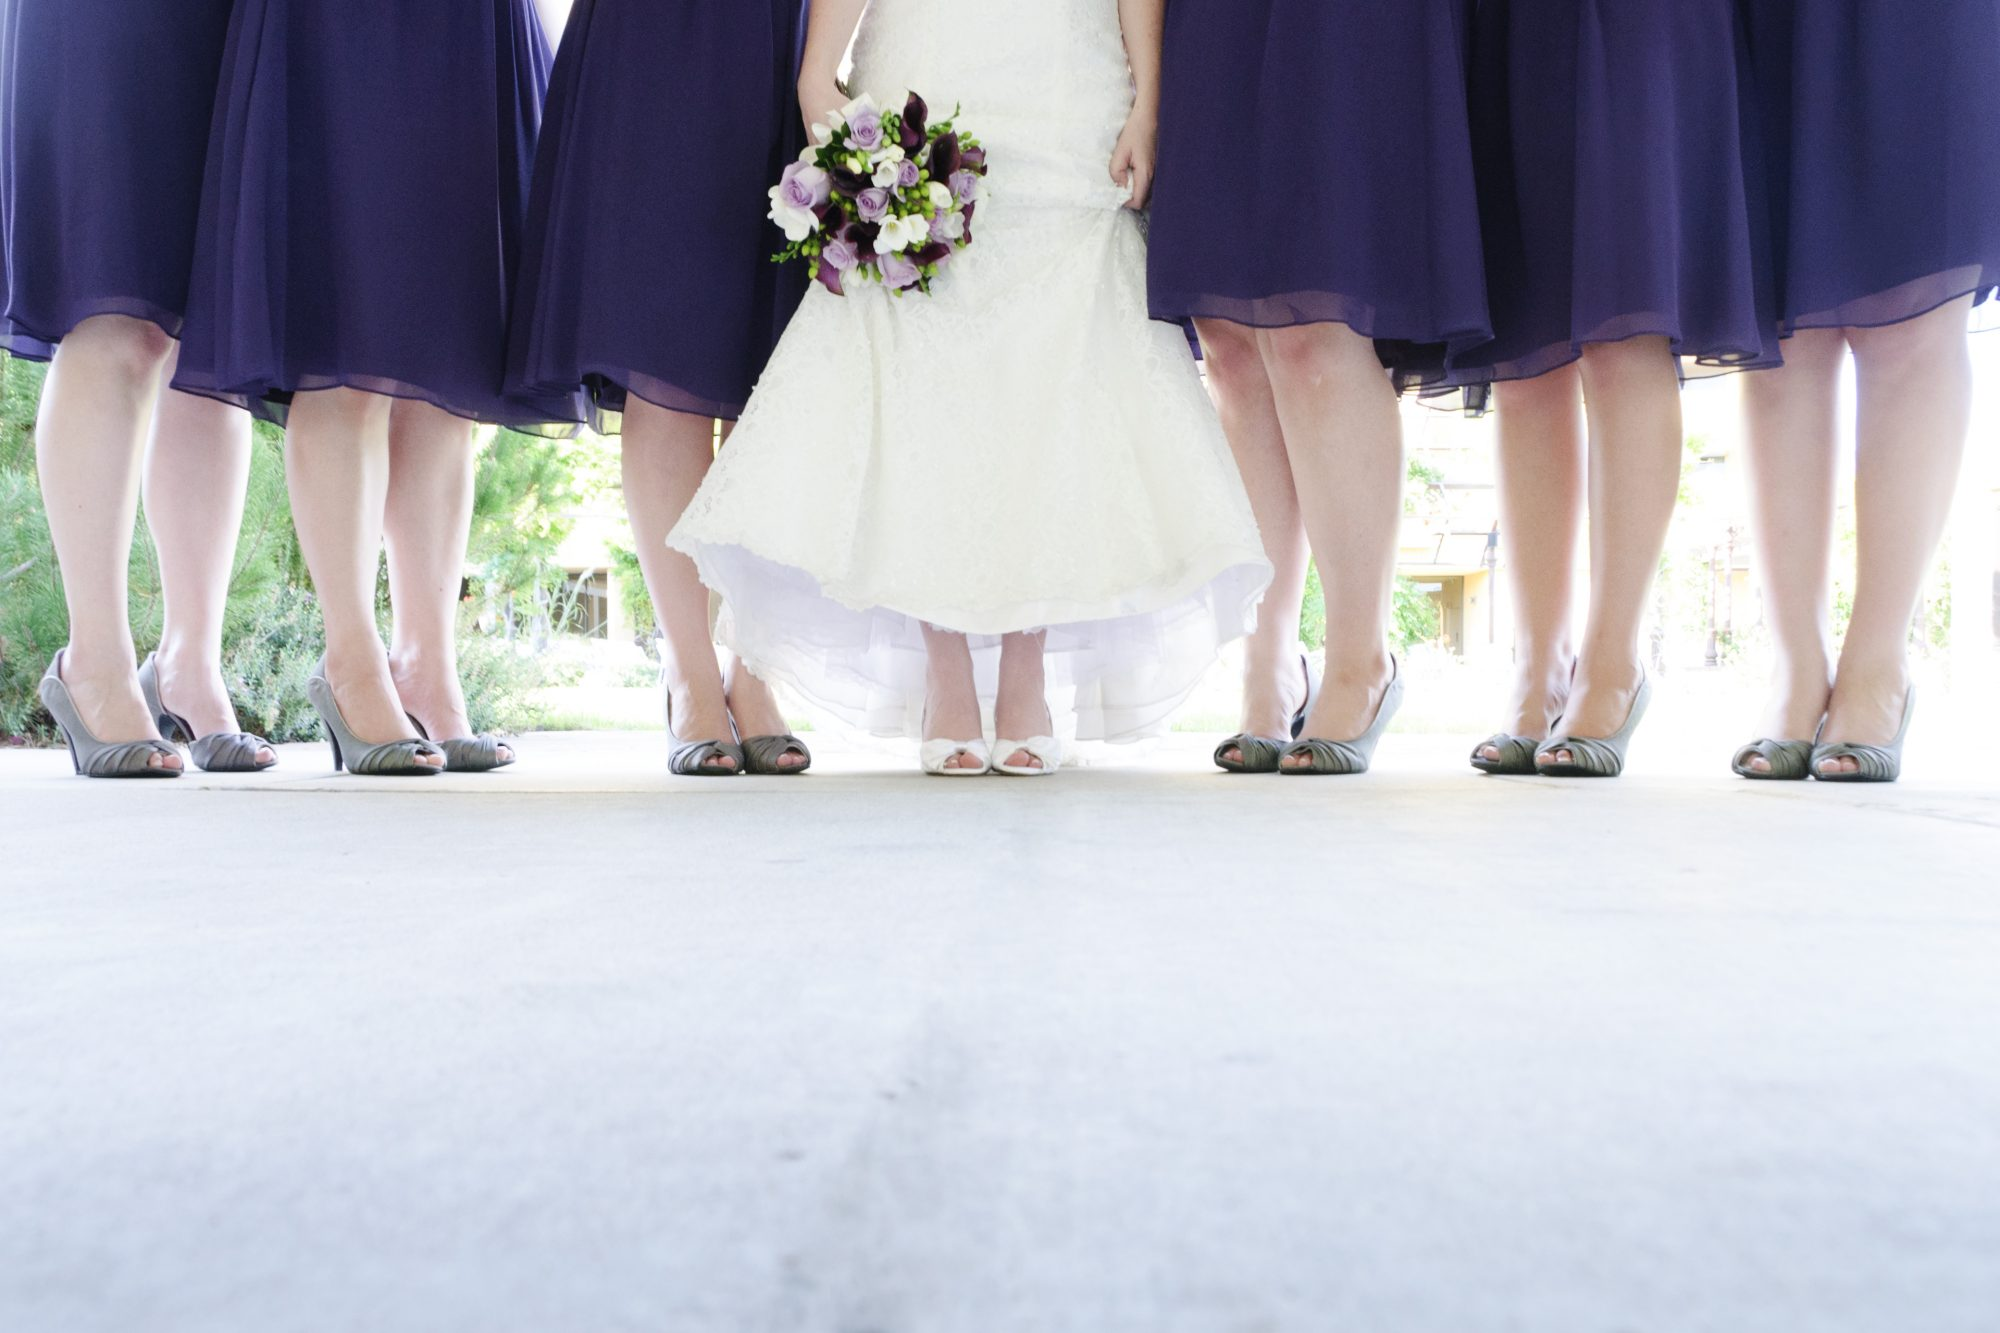 Bride and Bridesmaids Showing Shoes